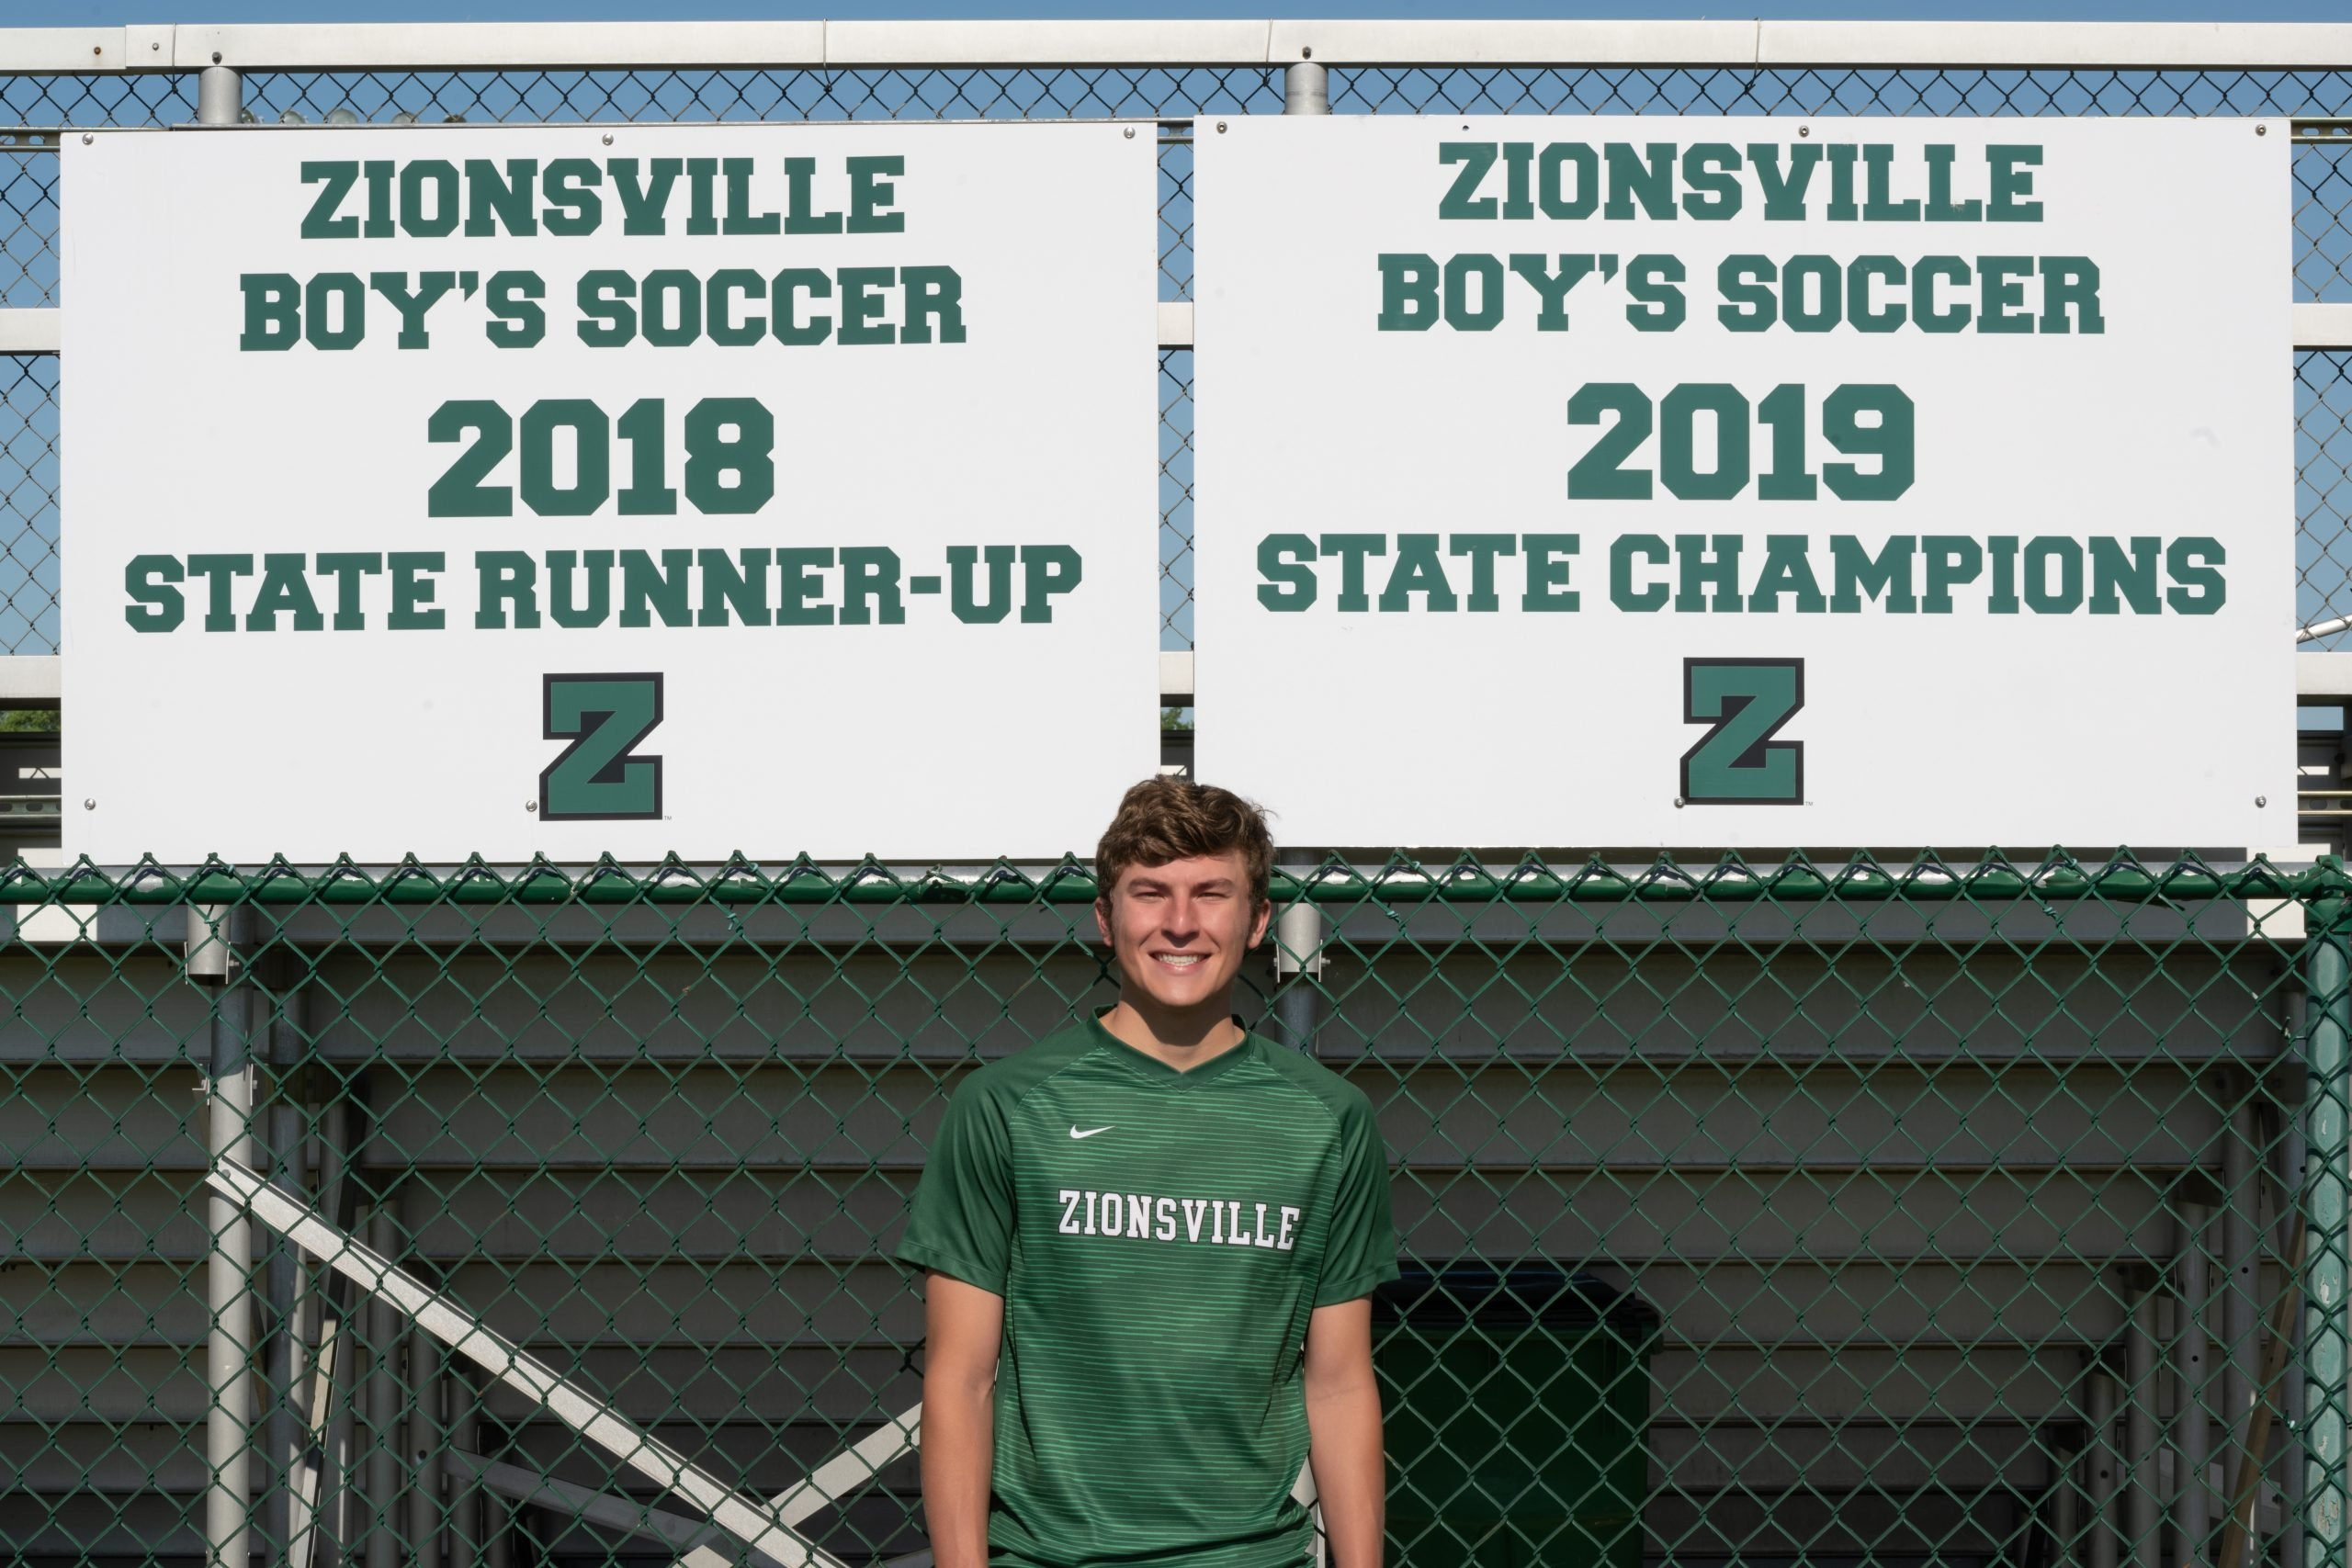 Zionsville's Chris Freeman